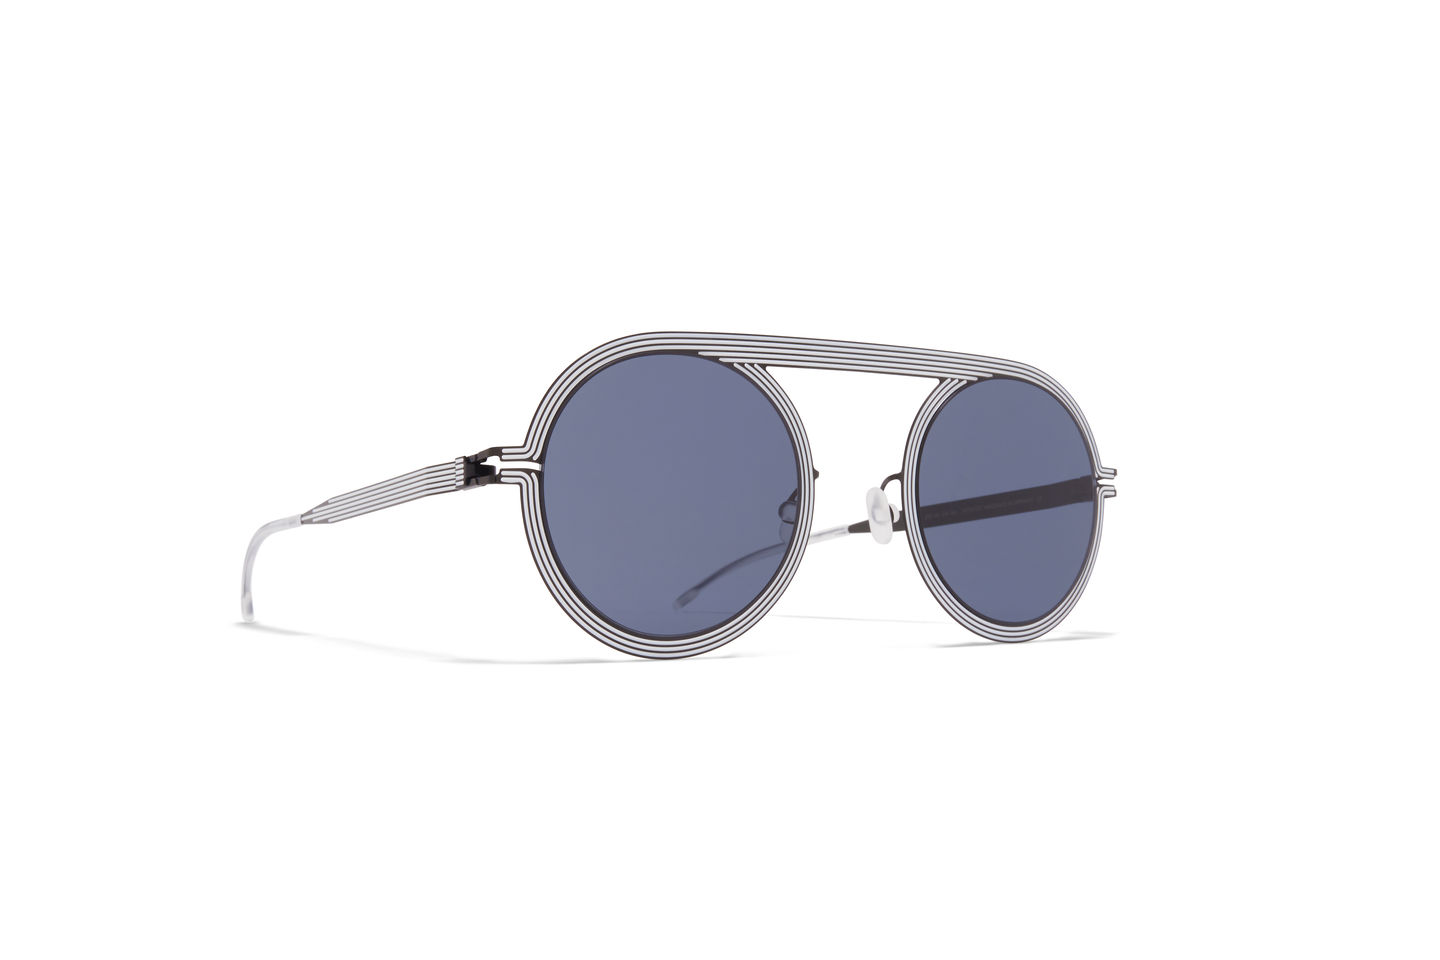 mykita-studio-sun-glasses-6-1-shiny-black-white-dark-grey-solid01